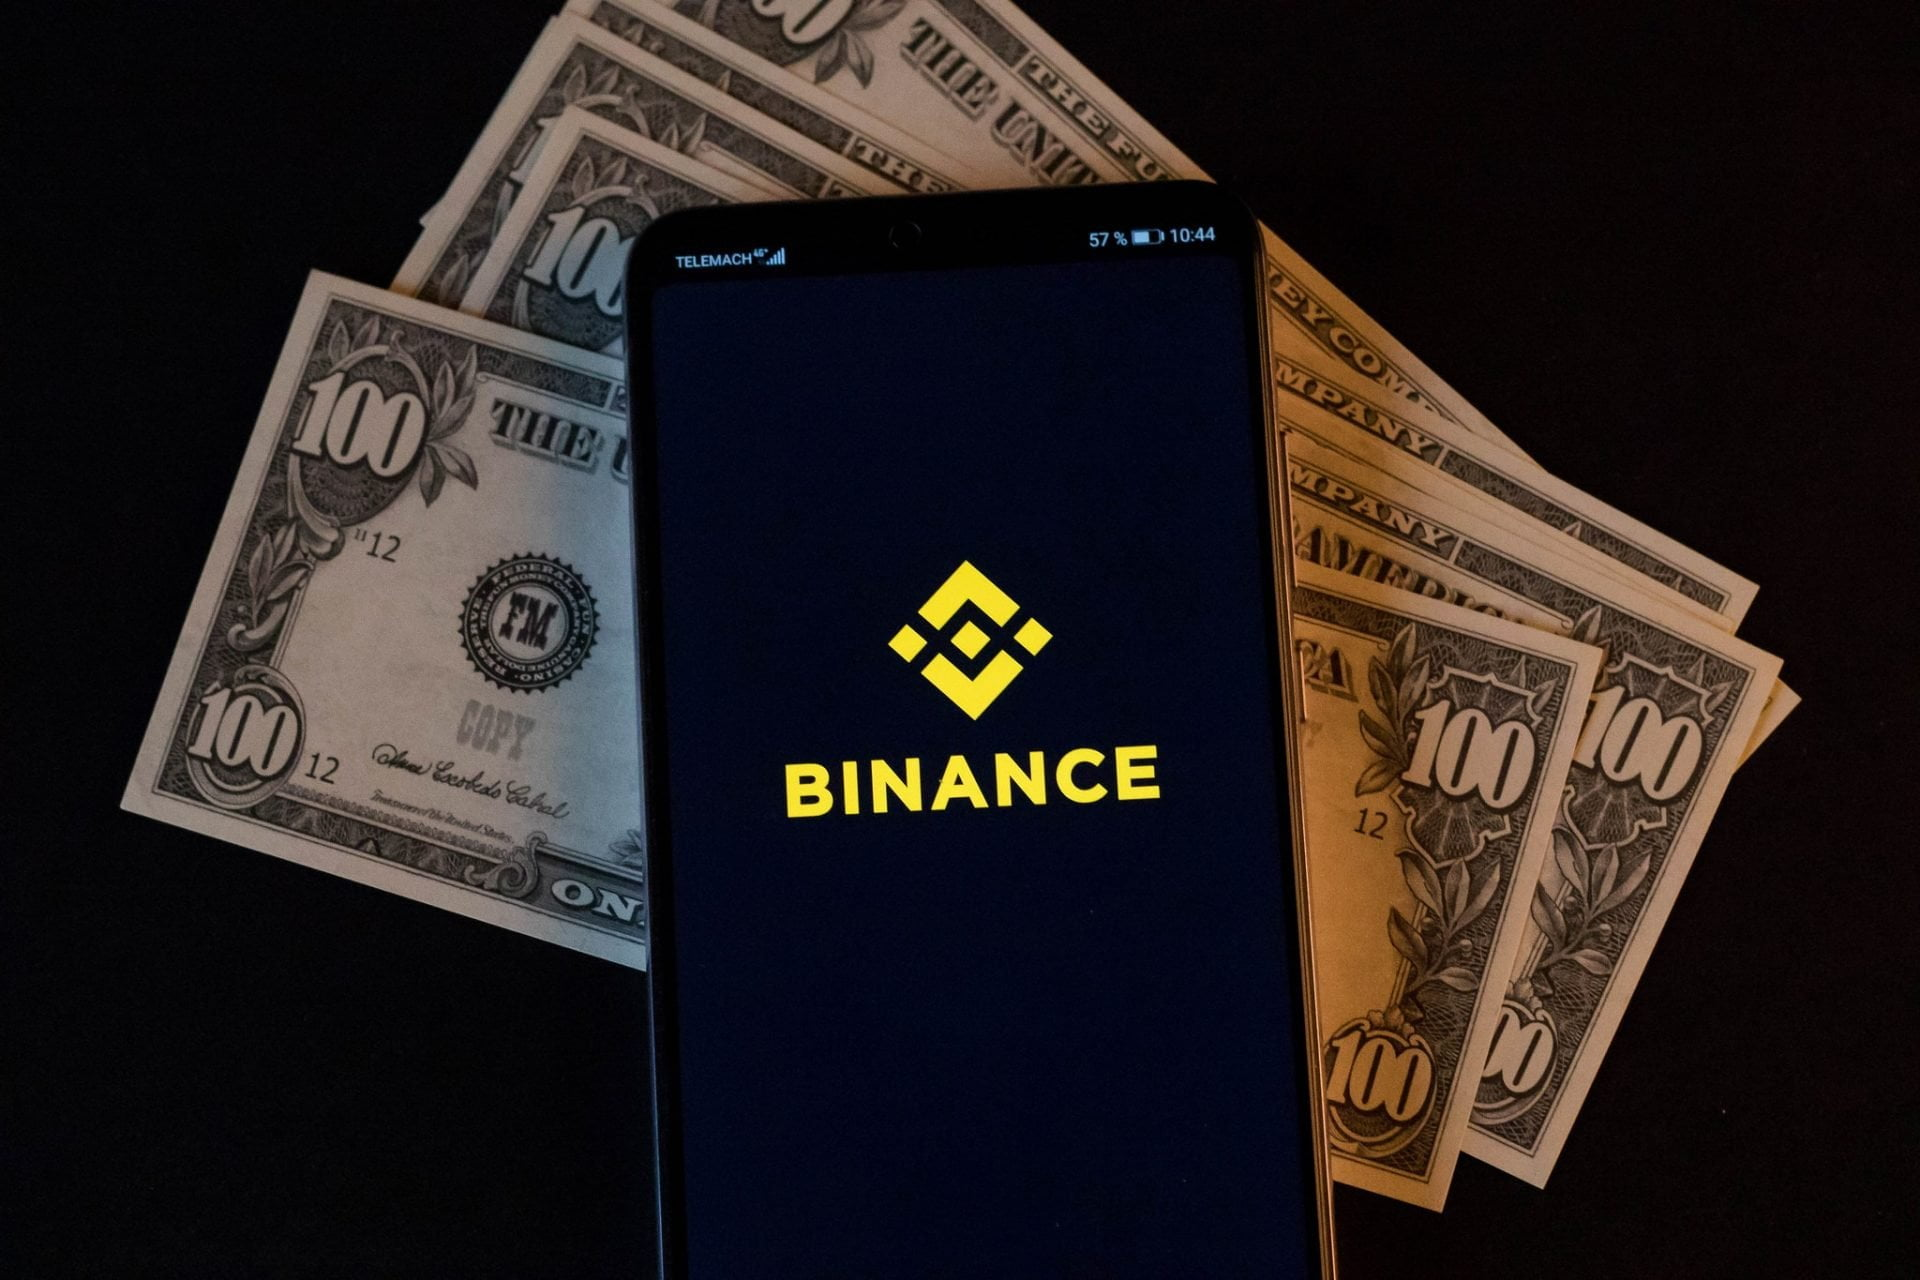 Binance Ships Out Crypto Debit Cards, But in Limited Quantities 23